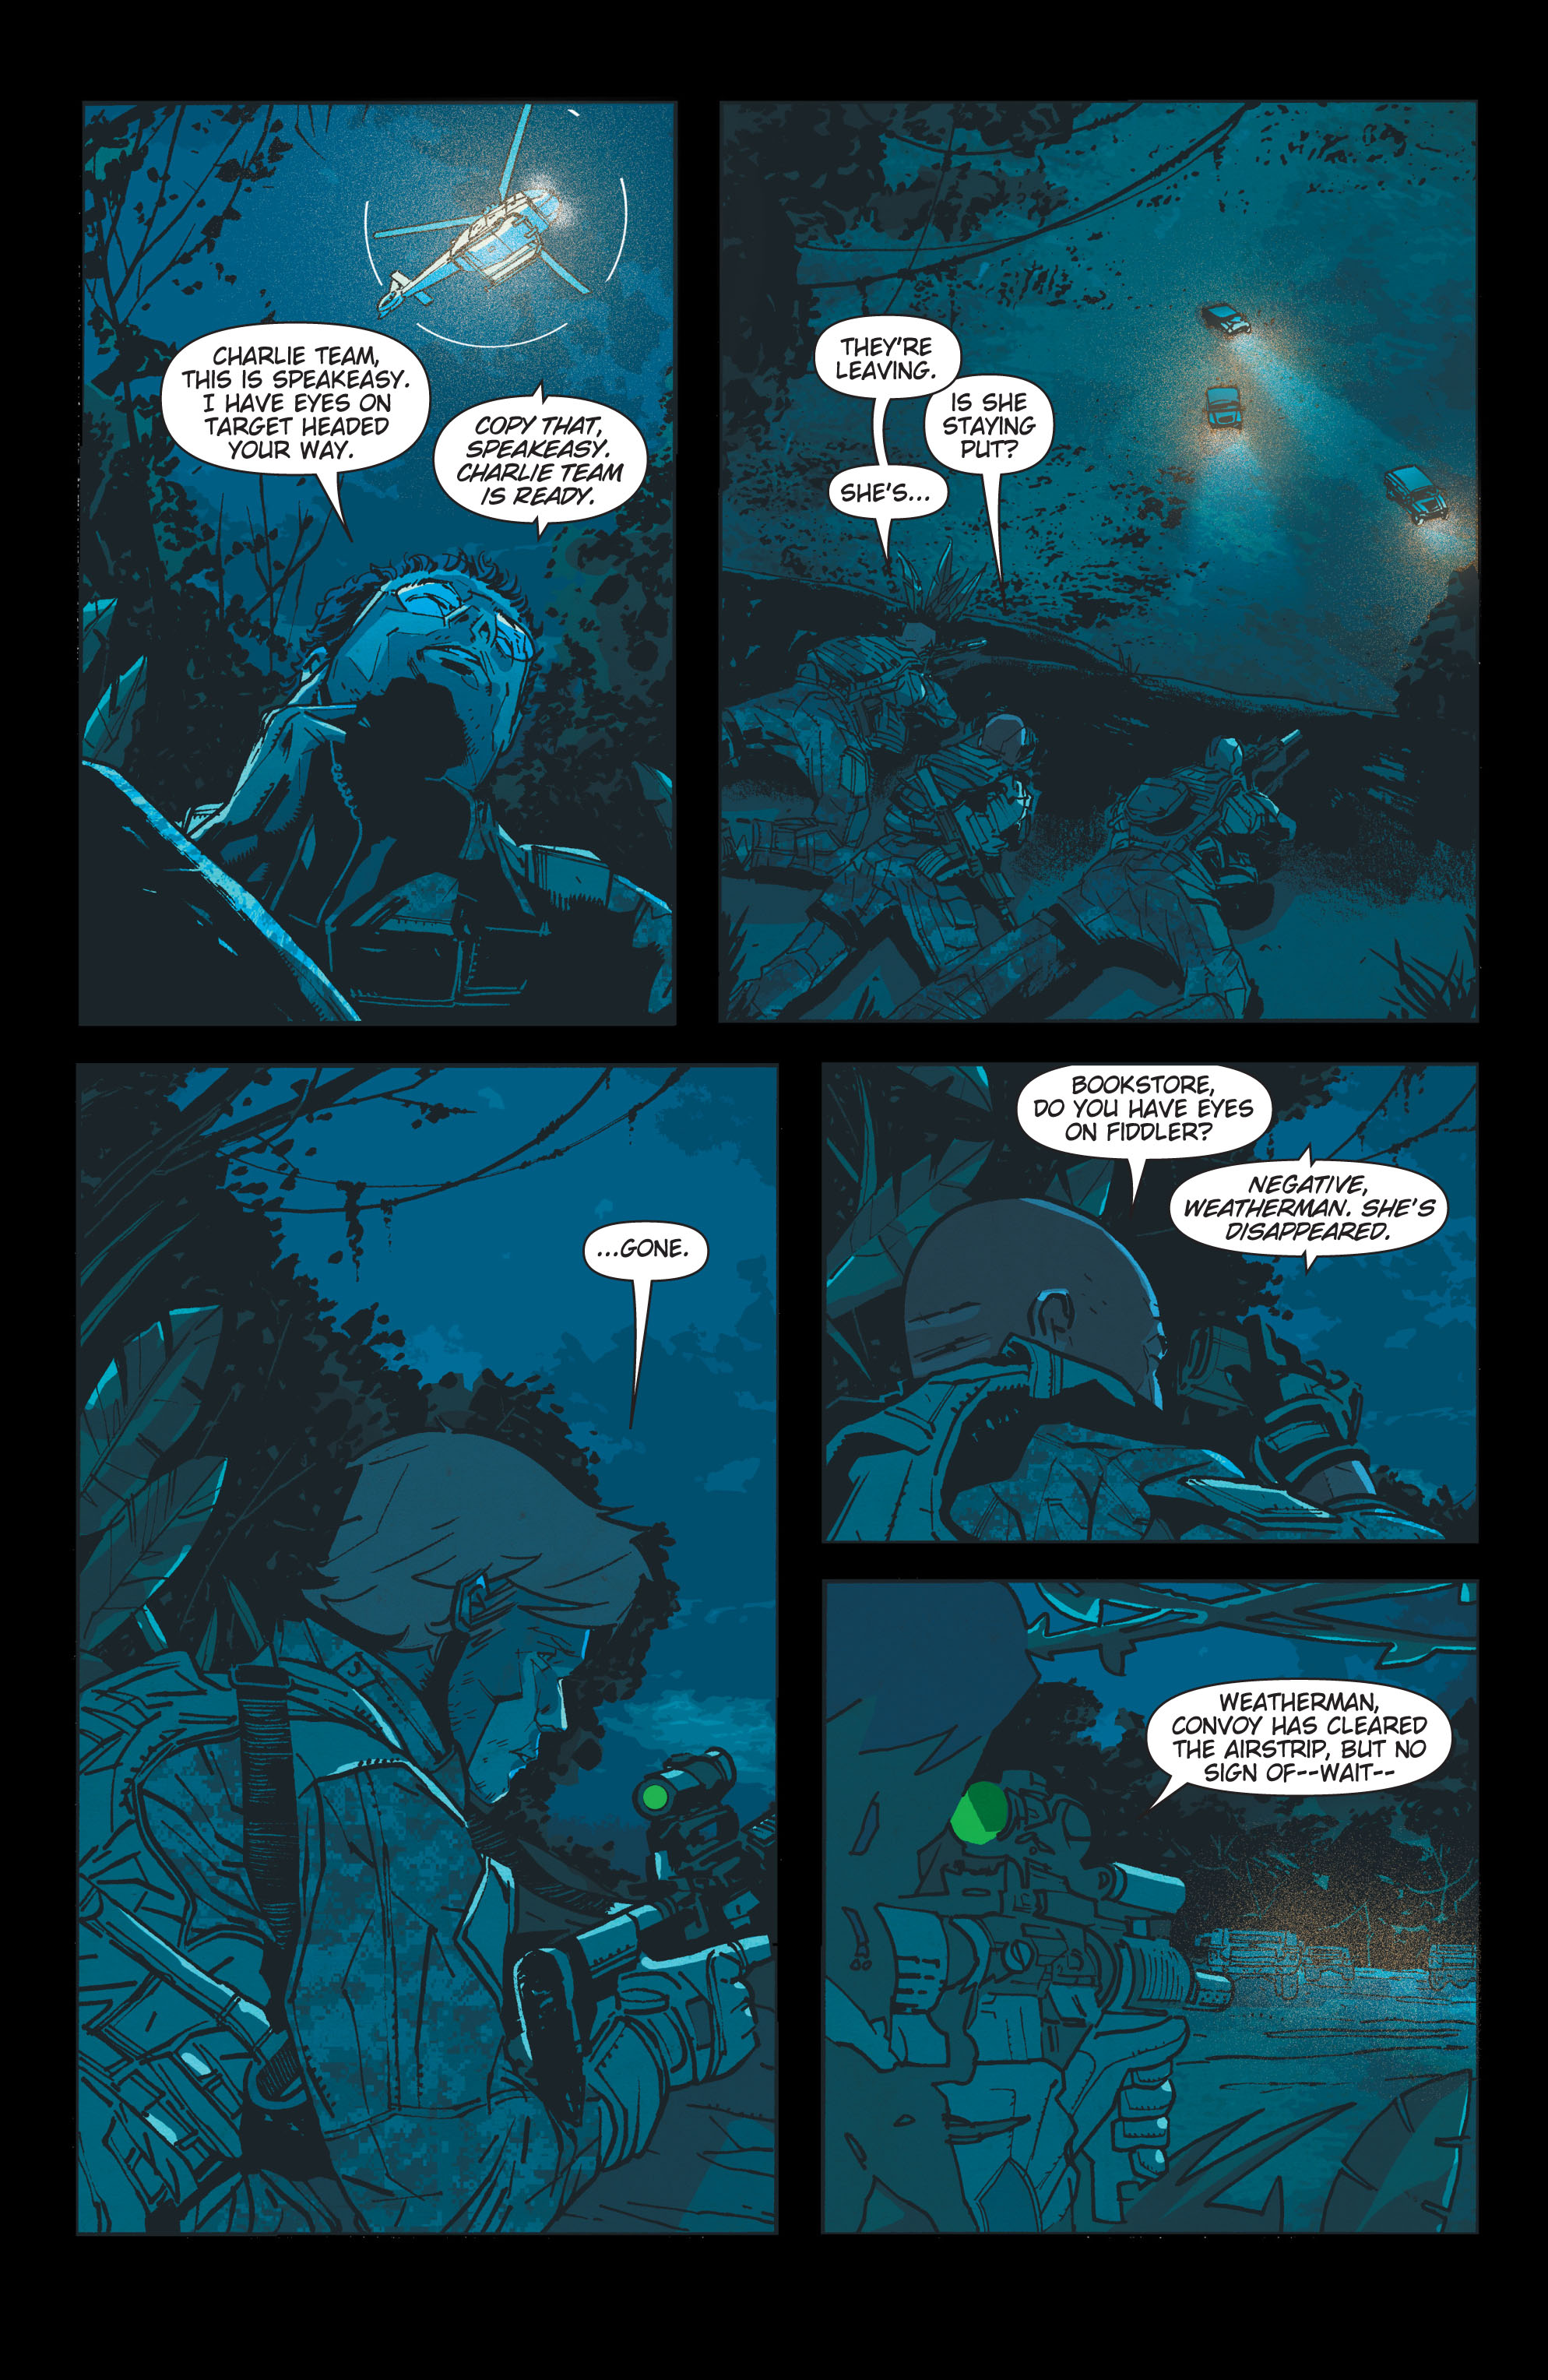 Read online The Activity comic -  Issue #4 - 17